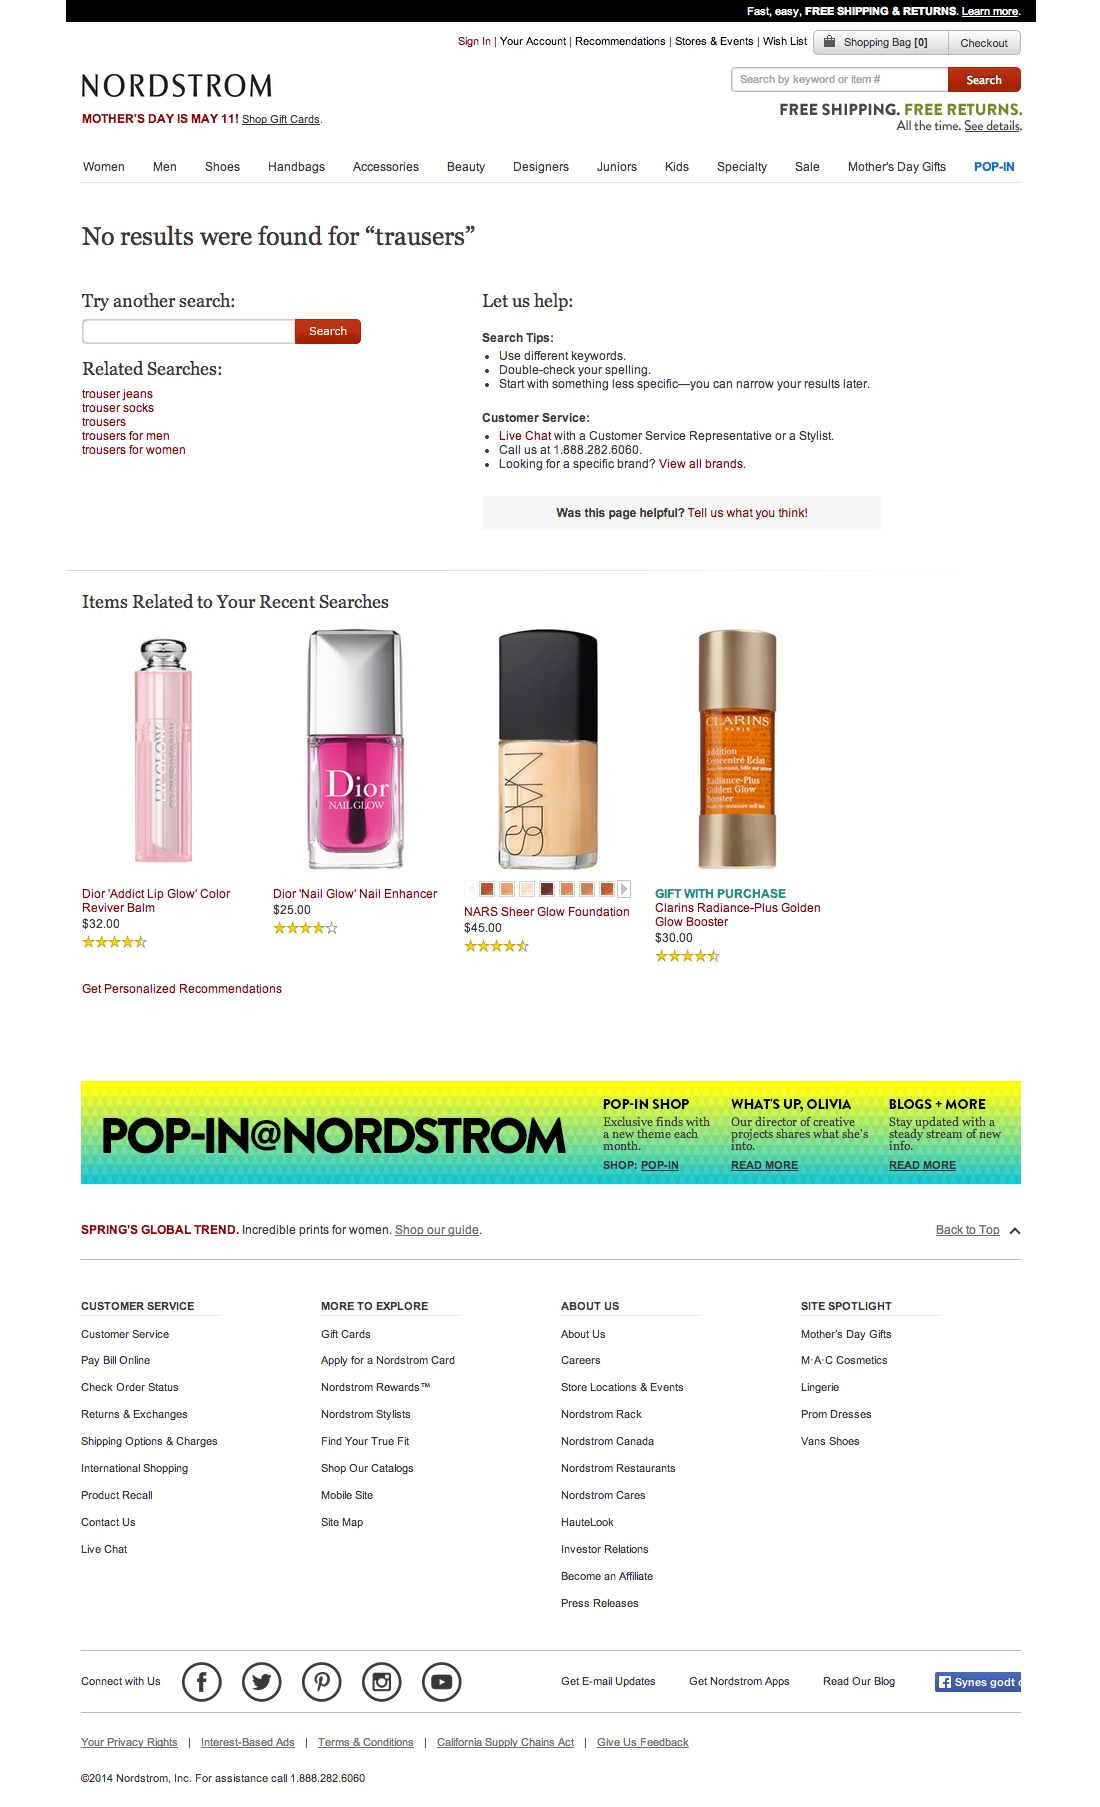 Nordstrom's No Results Page